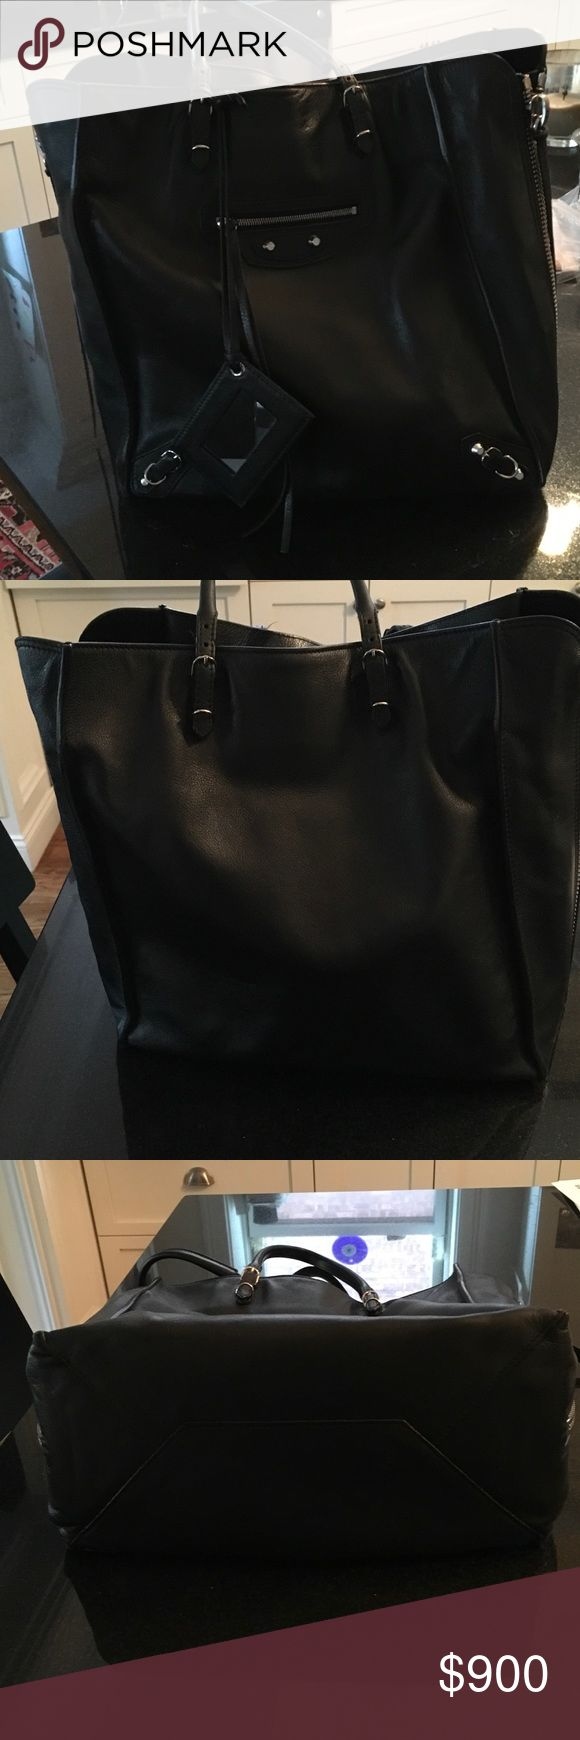 Balenciaga papier medium tote Black medium sized tote bag purchased 9 months ago.  Dust bag included.  Can be used with sides zipped or unzipped. Balenciaga Bags Satchels